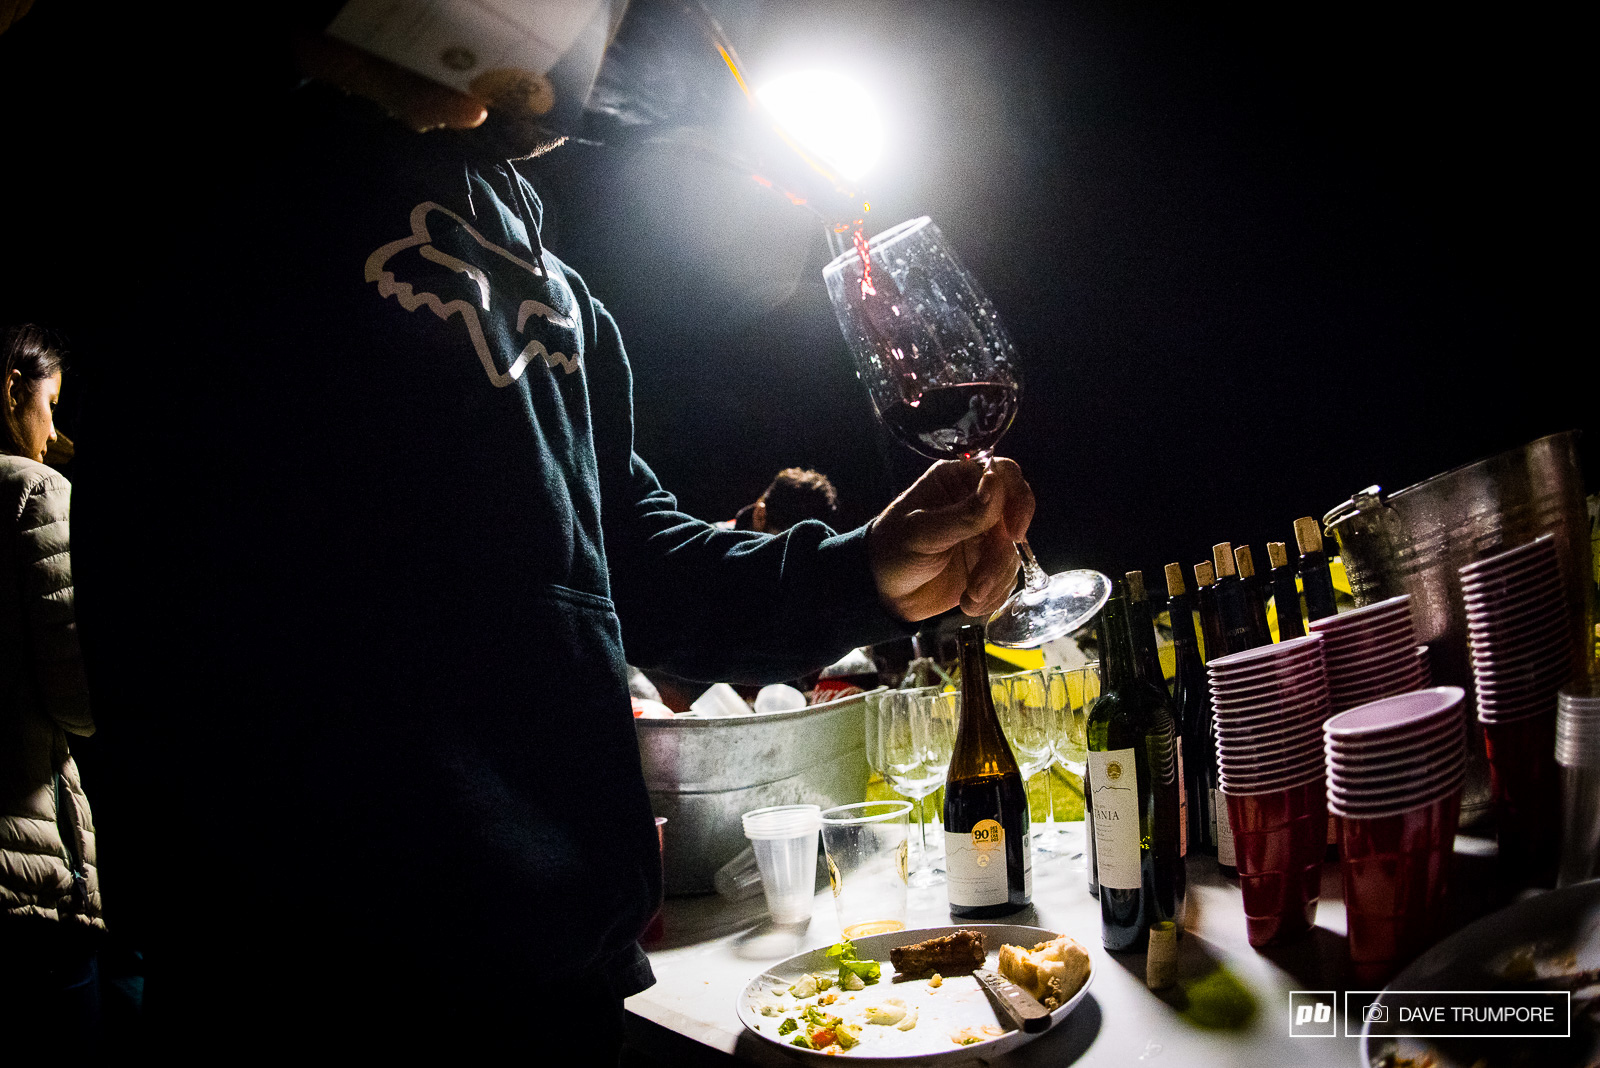 As with every night in camp the red wine was flowing plentifully.